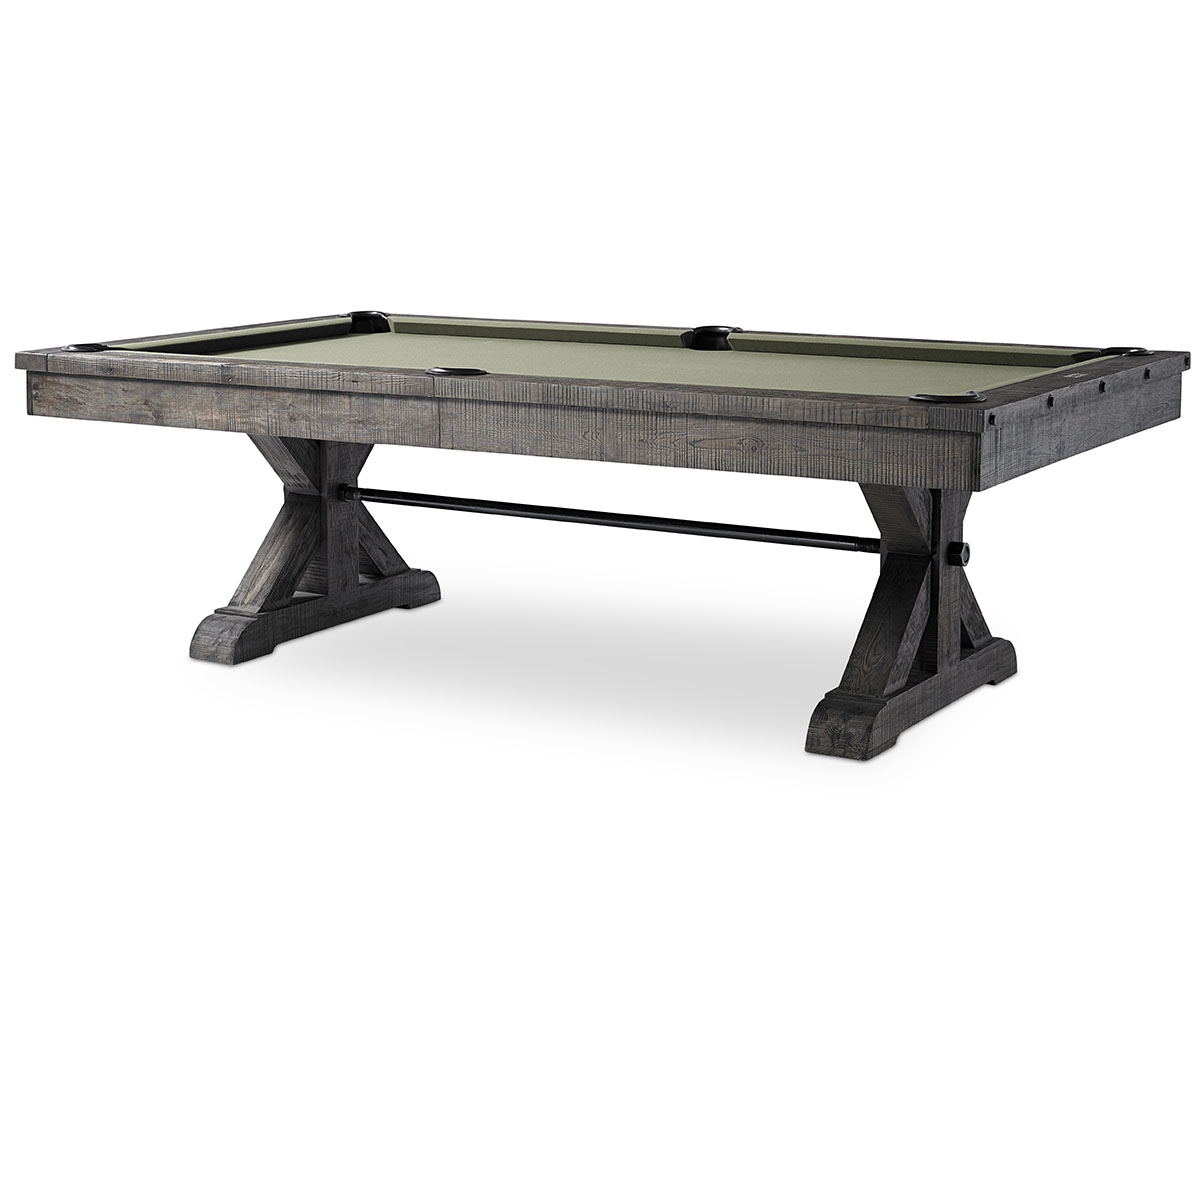 Family leisure little rock arkansas - The Otis Pool Table By Plank Hide